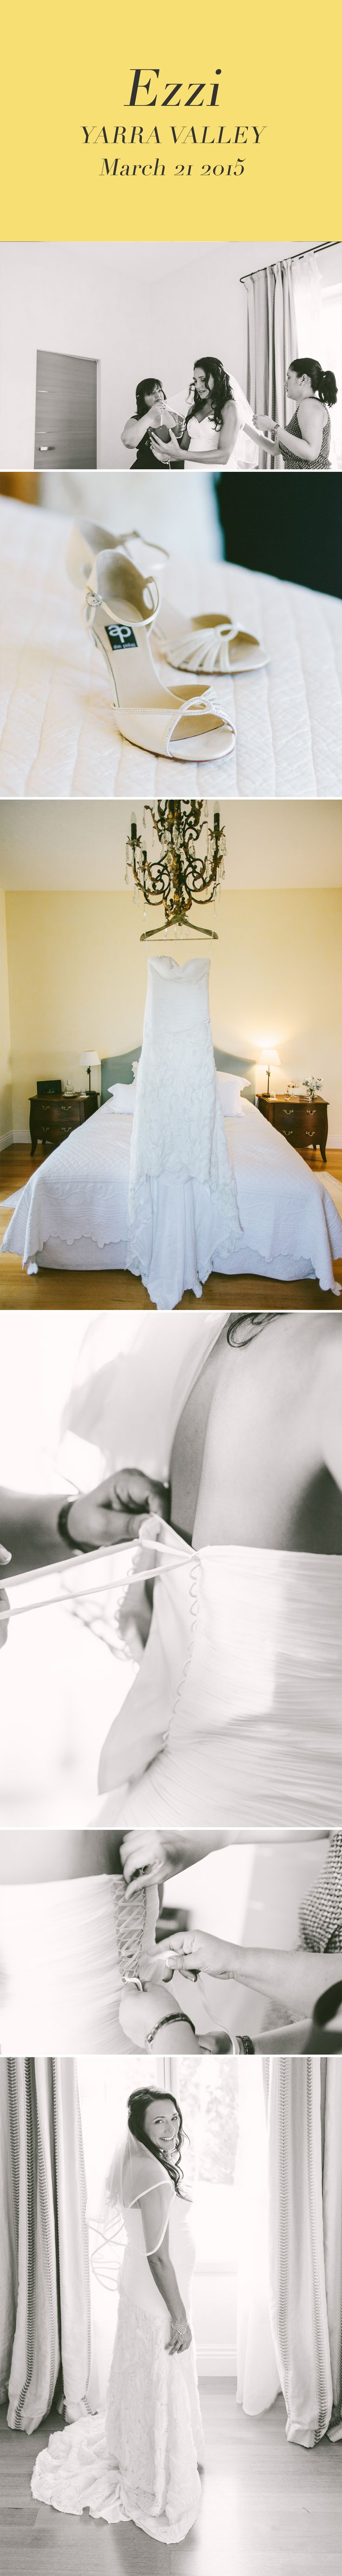 Getting ready: putting on the wedding dress